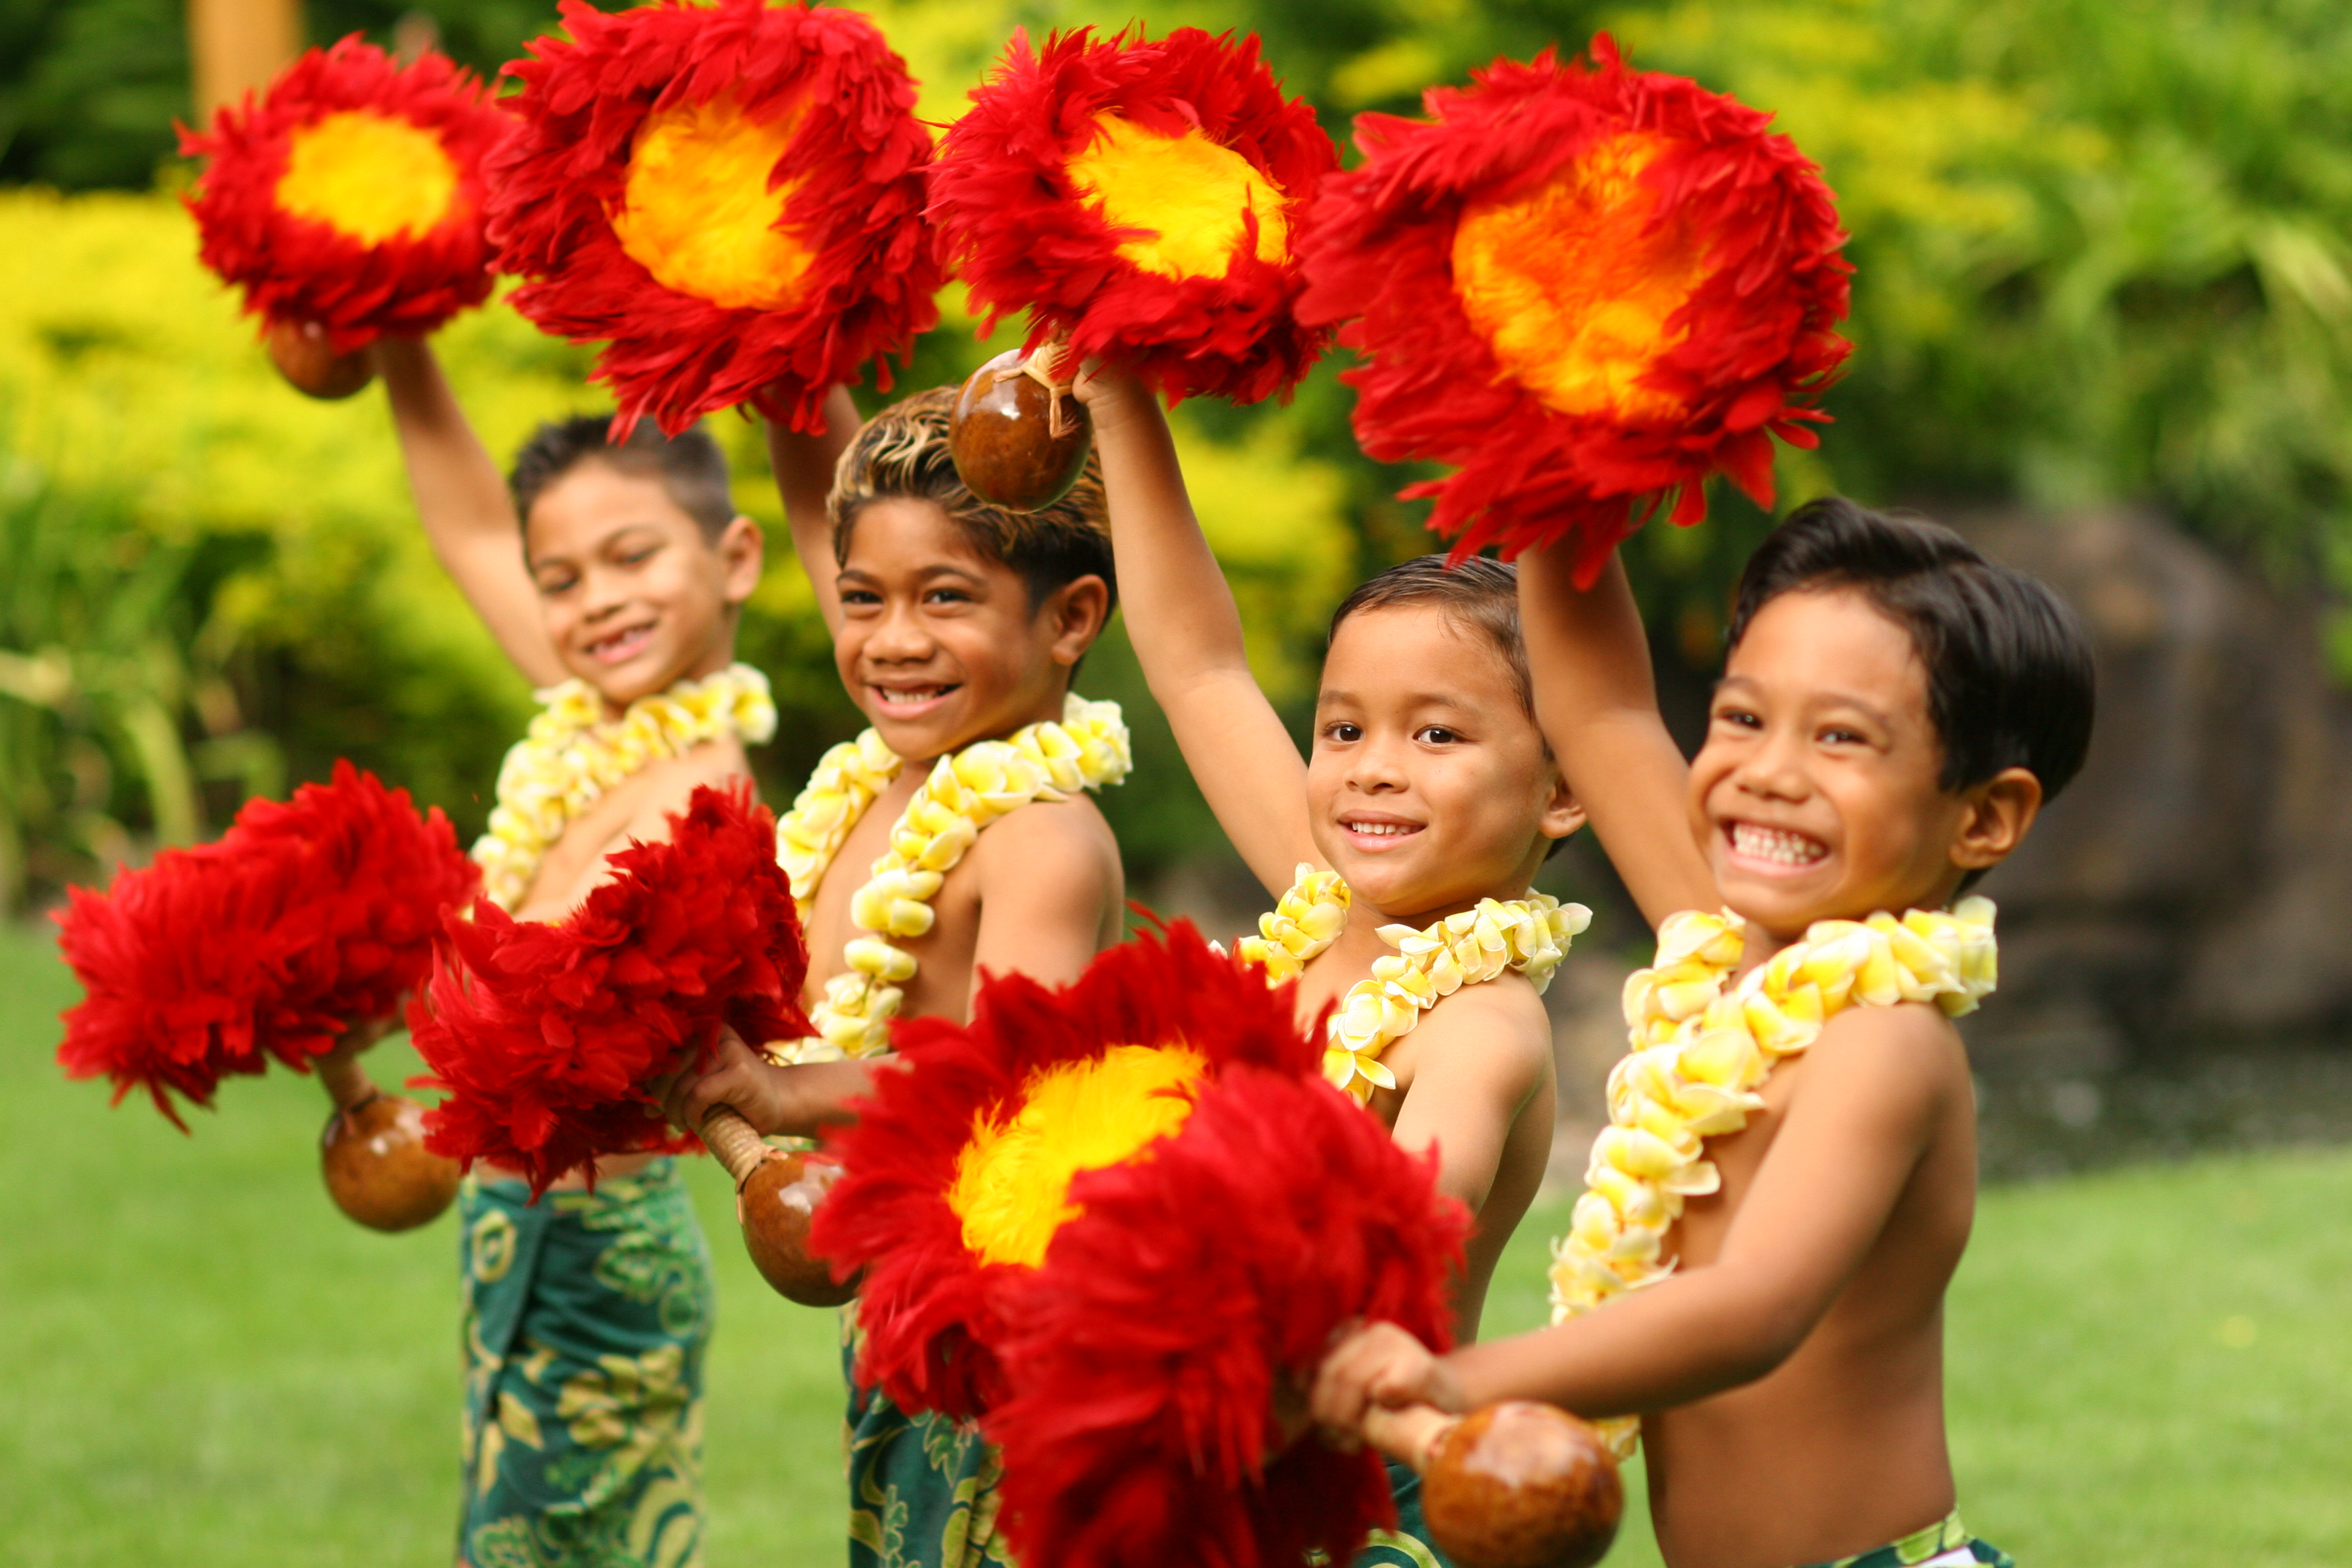 photo of four keiki boys dancing